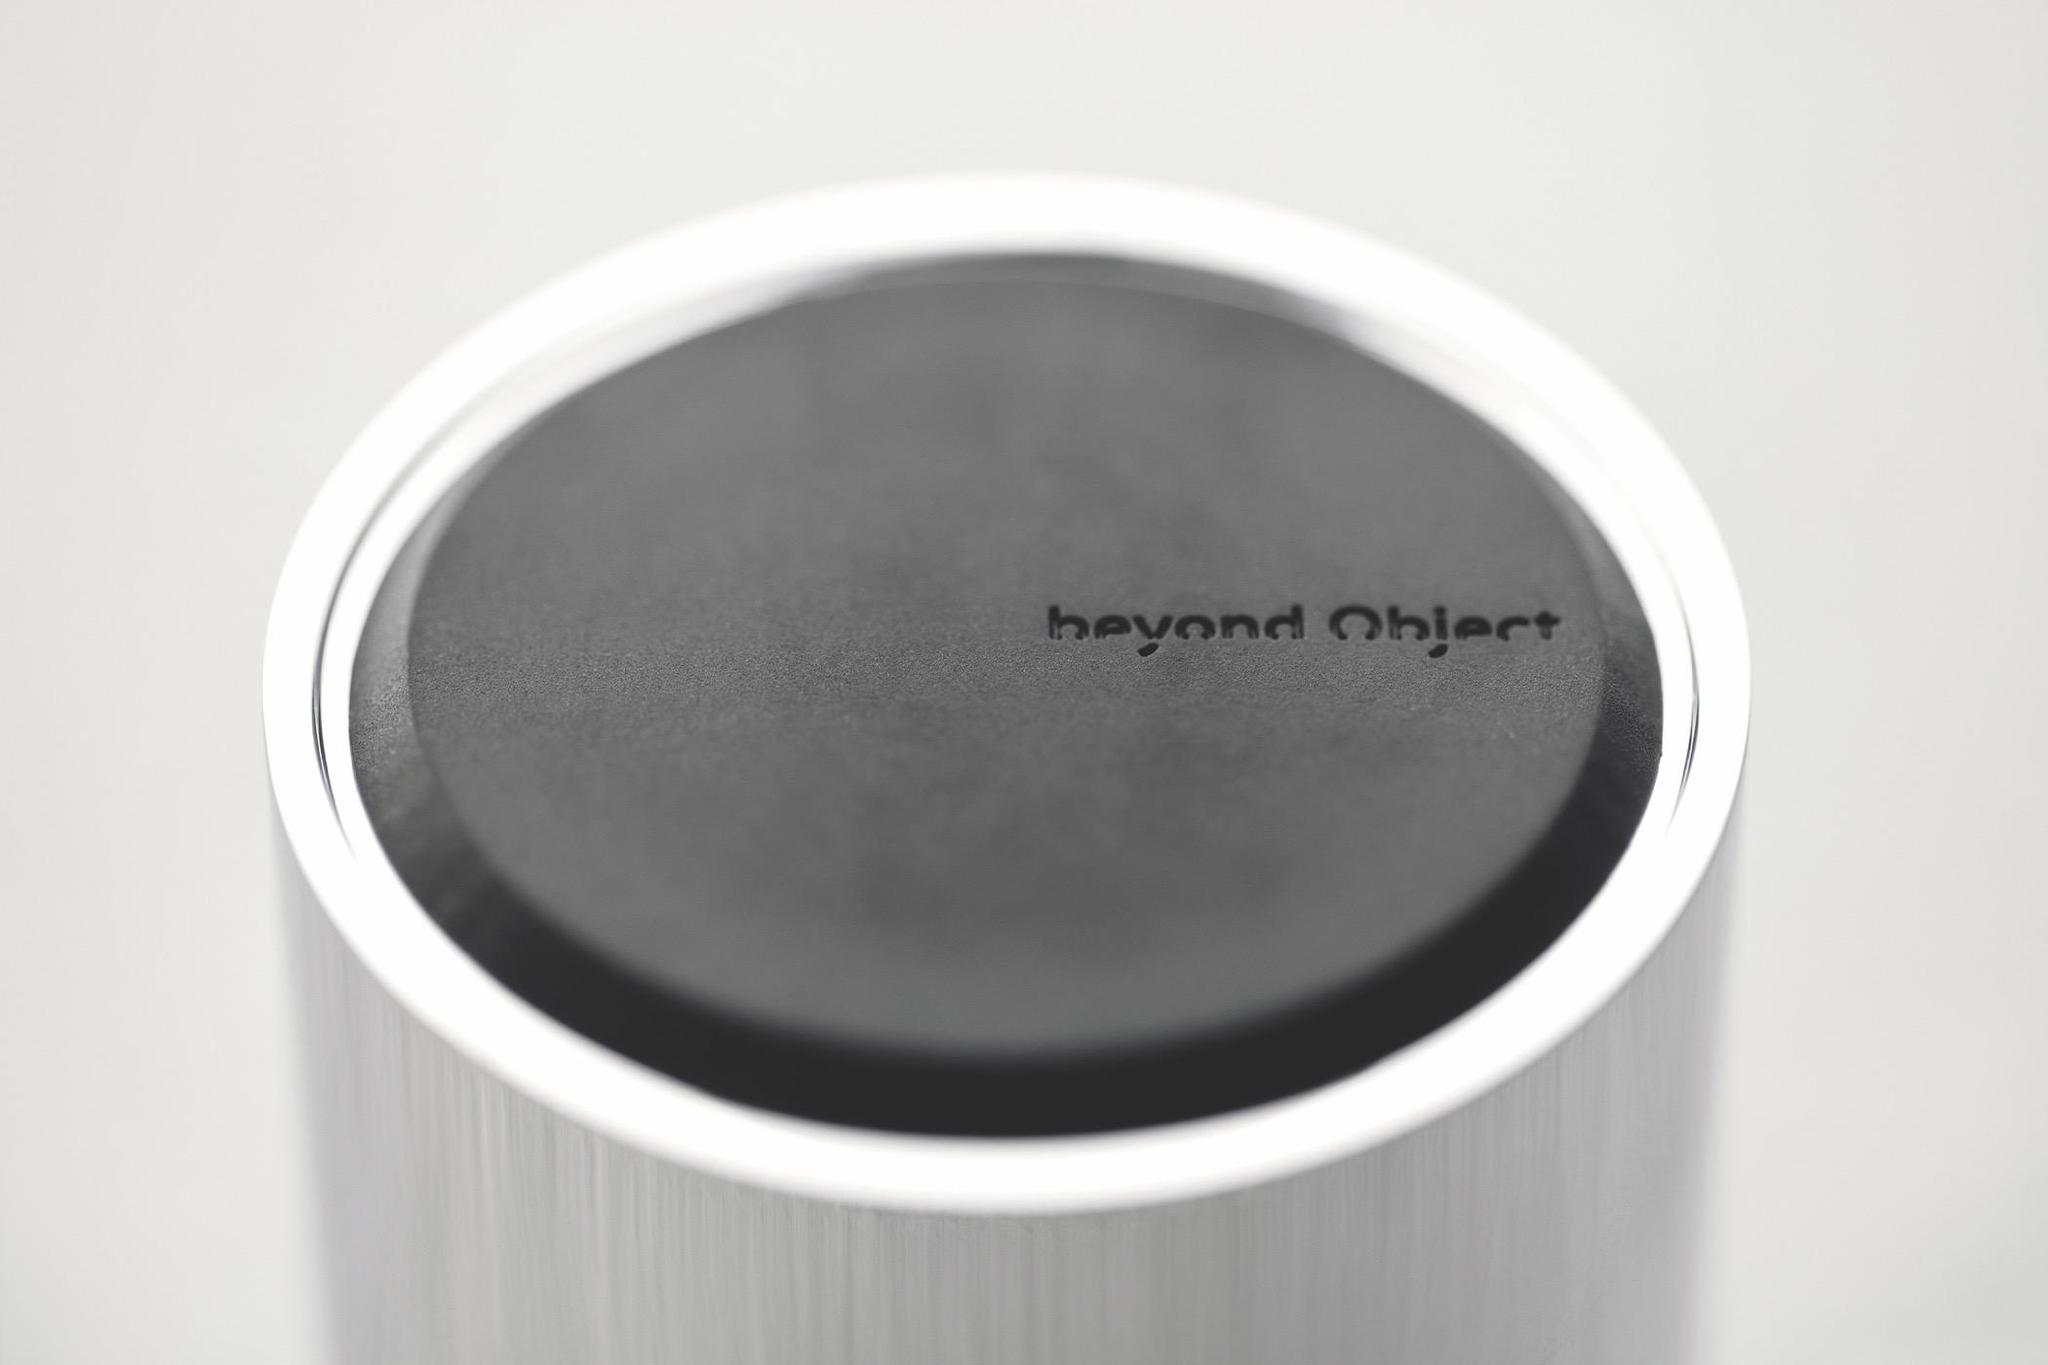 Beyond Object Funno Pencil Sharpener Black